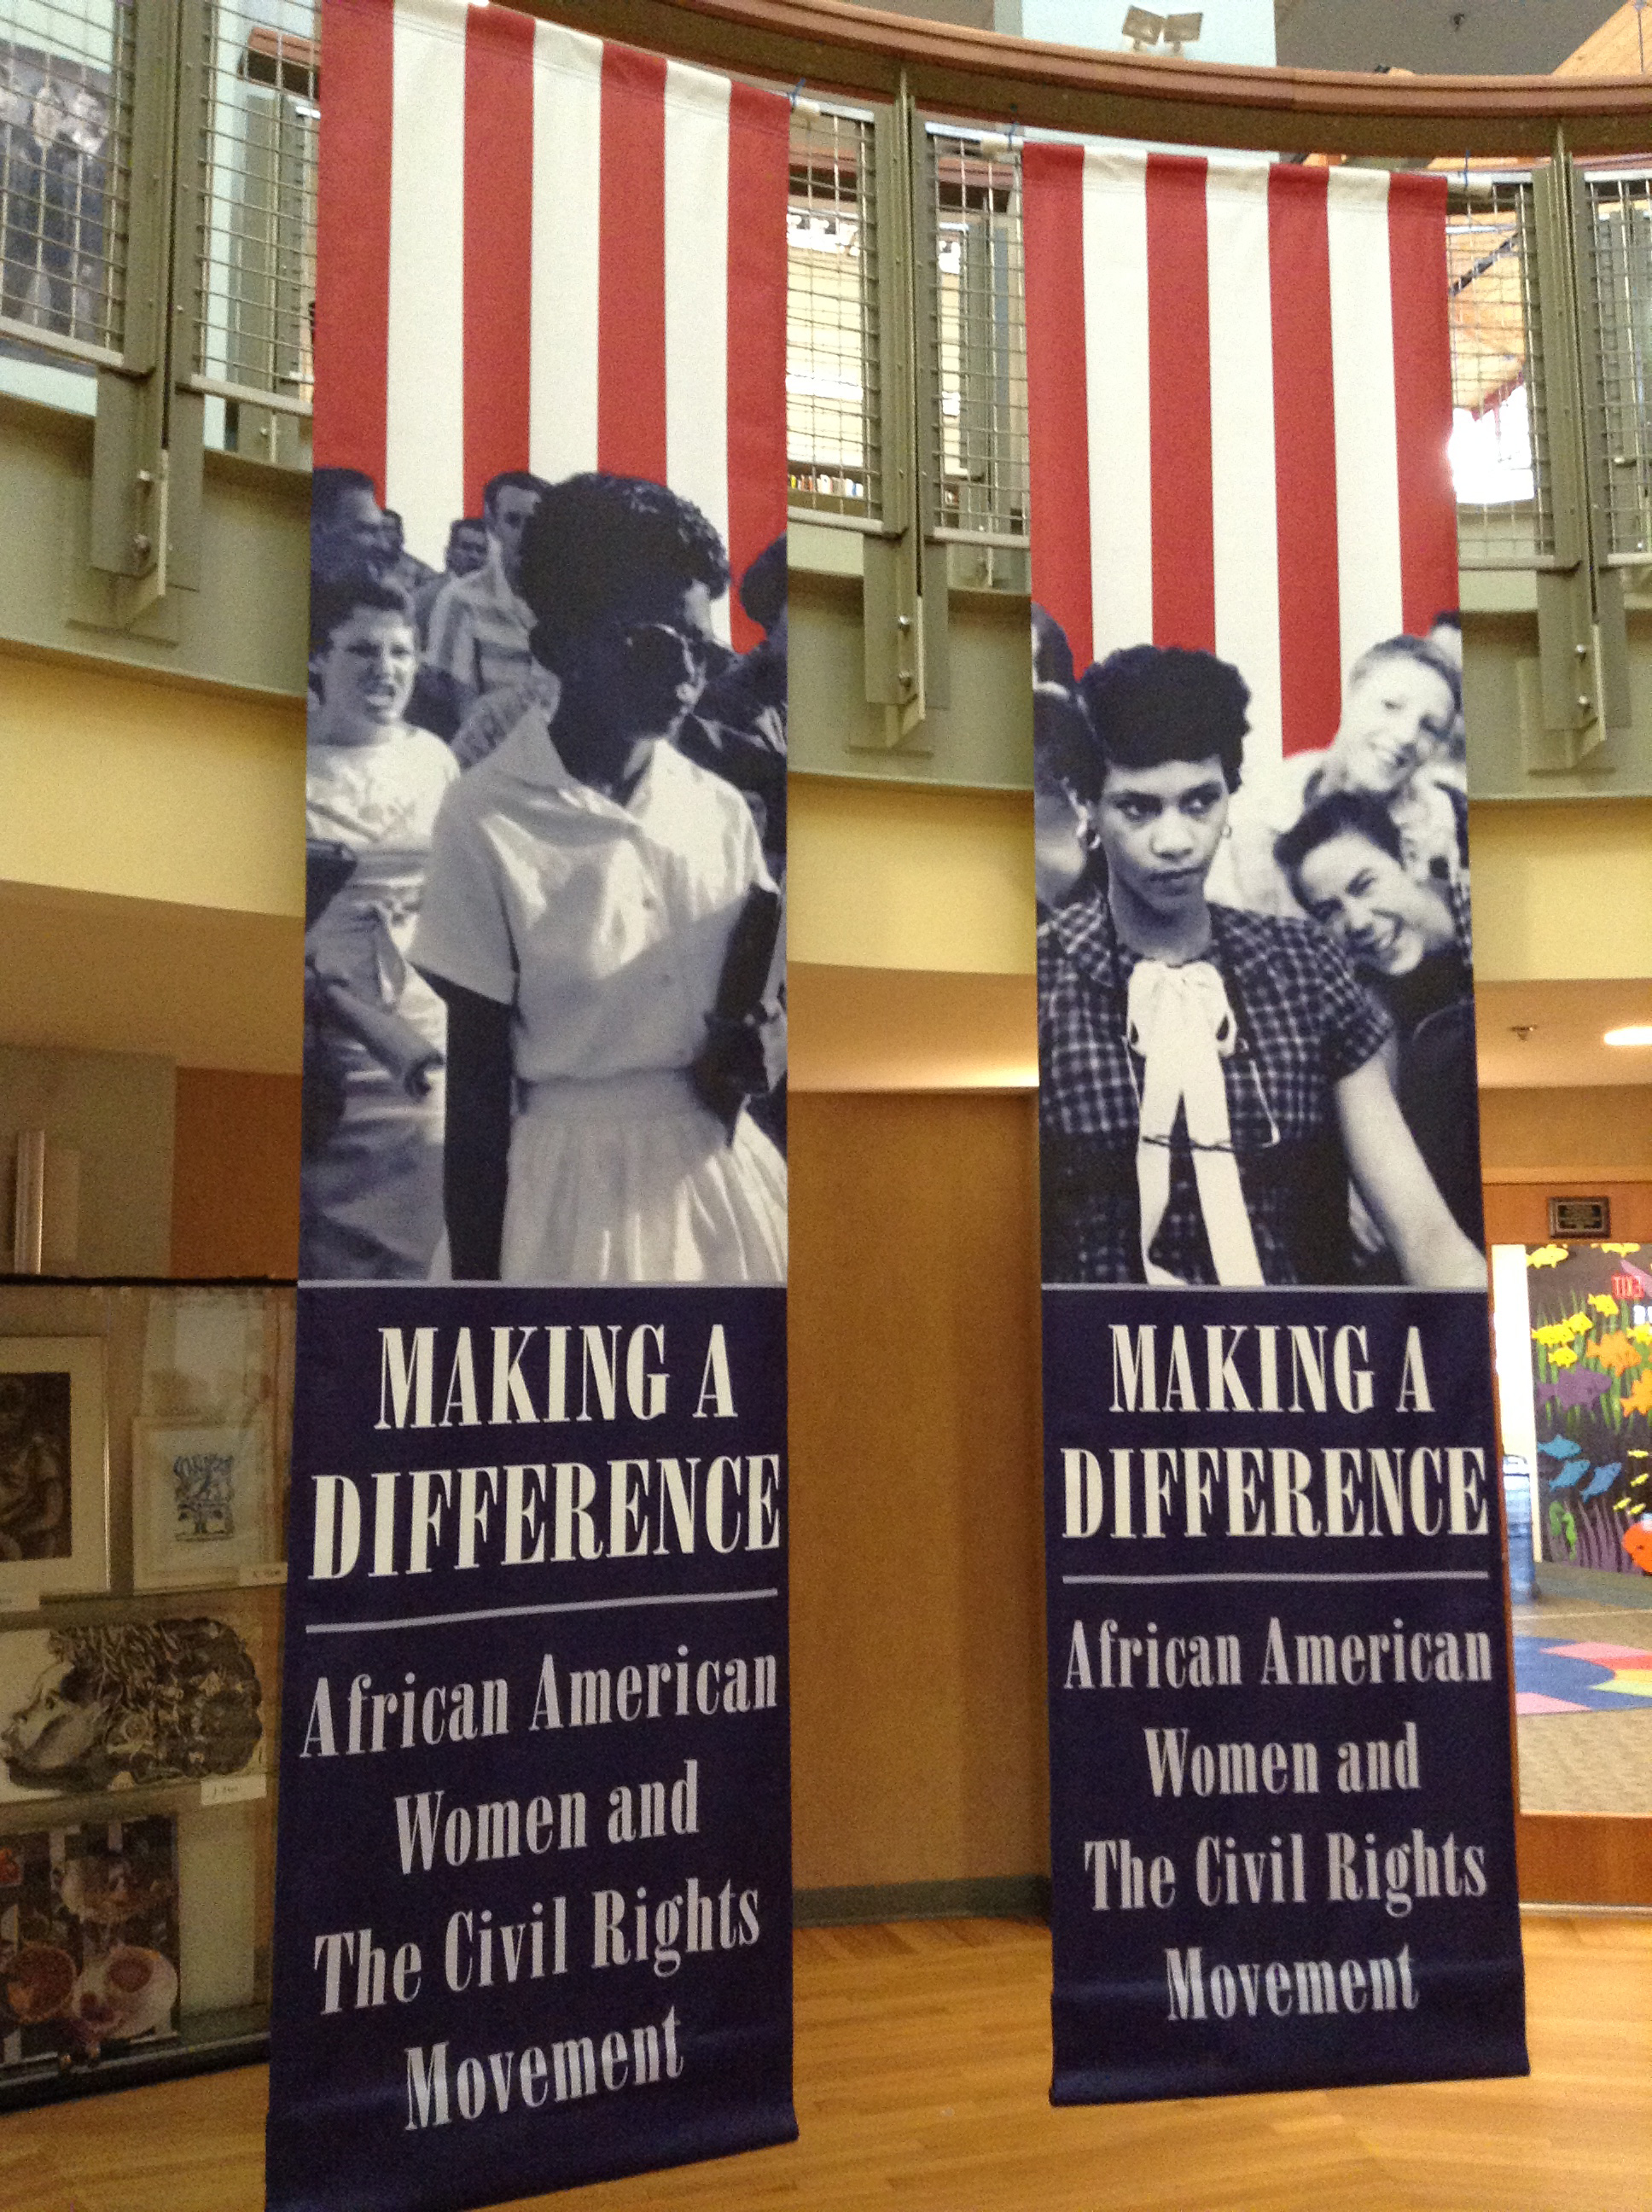 Making a Difference exhibit